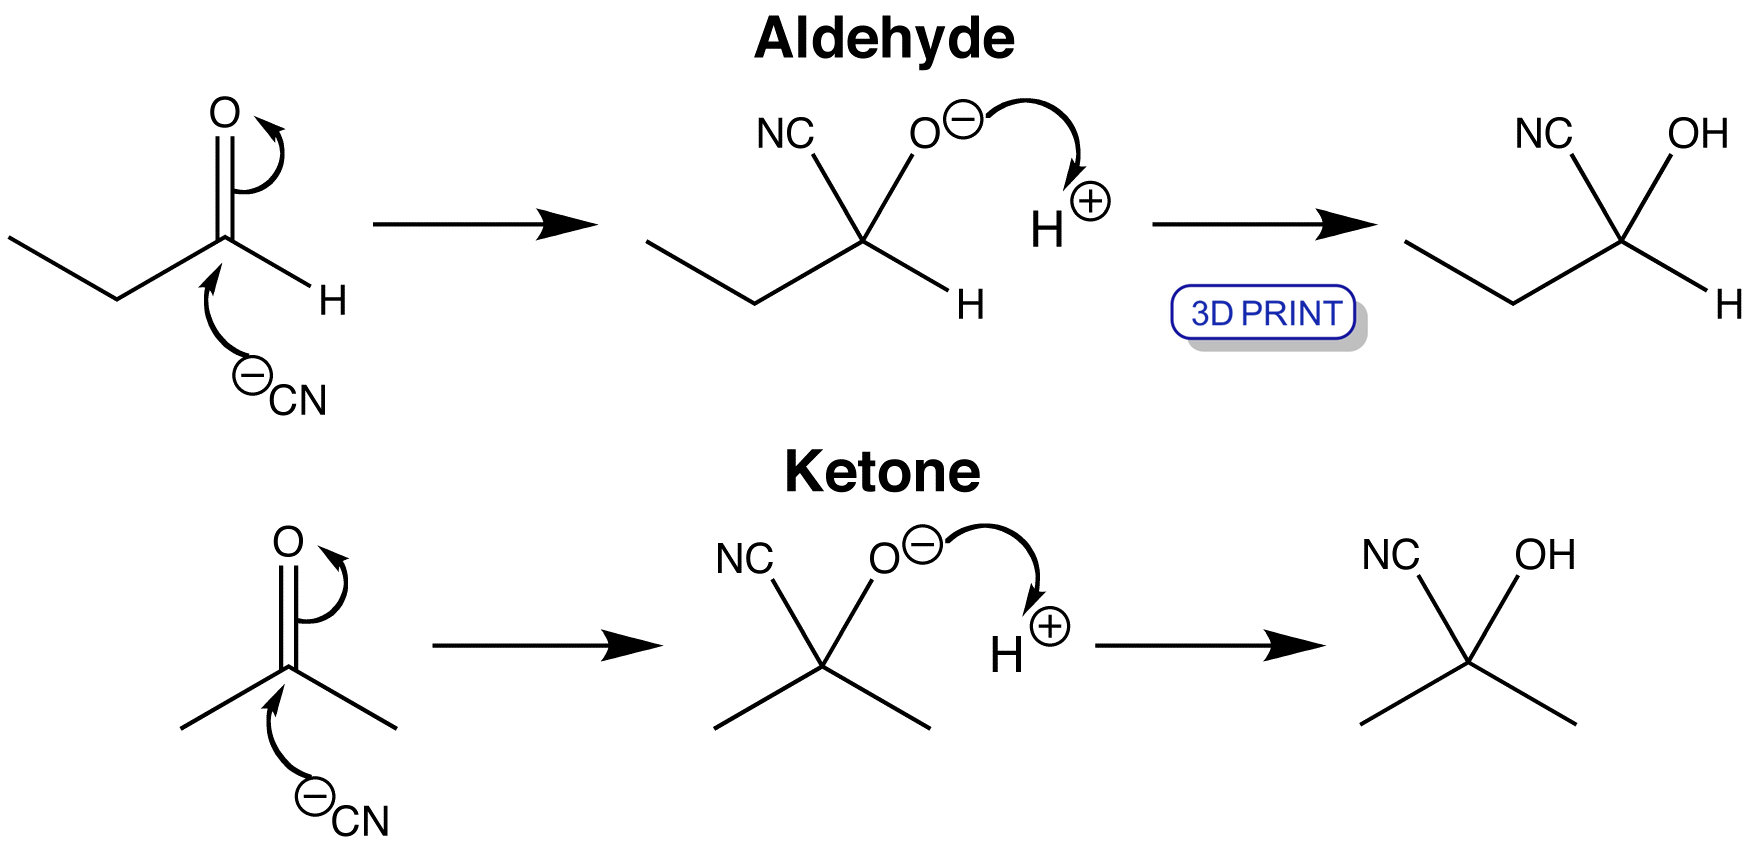 (http://www.chemtube3d.com/model/nucleophilic_substitution/cyanohydrin/mechanism_n.png)